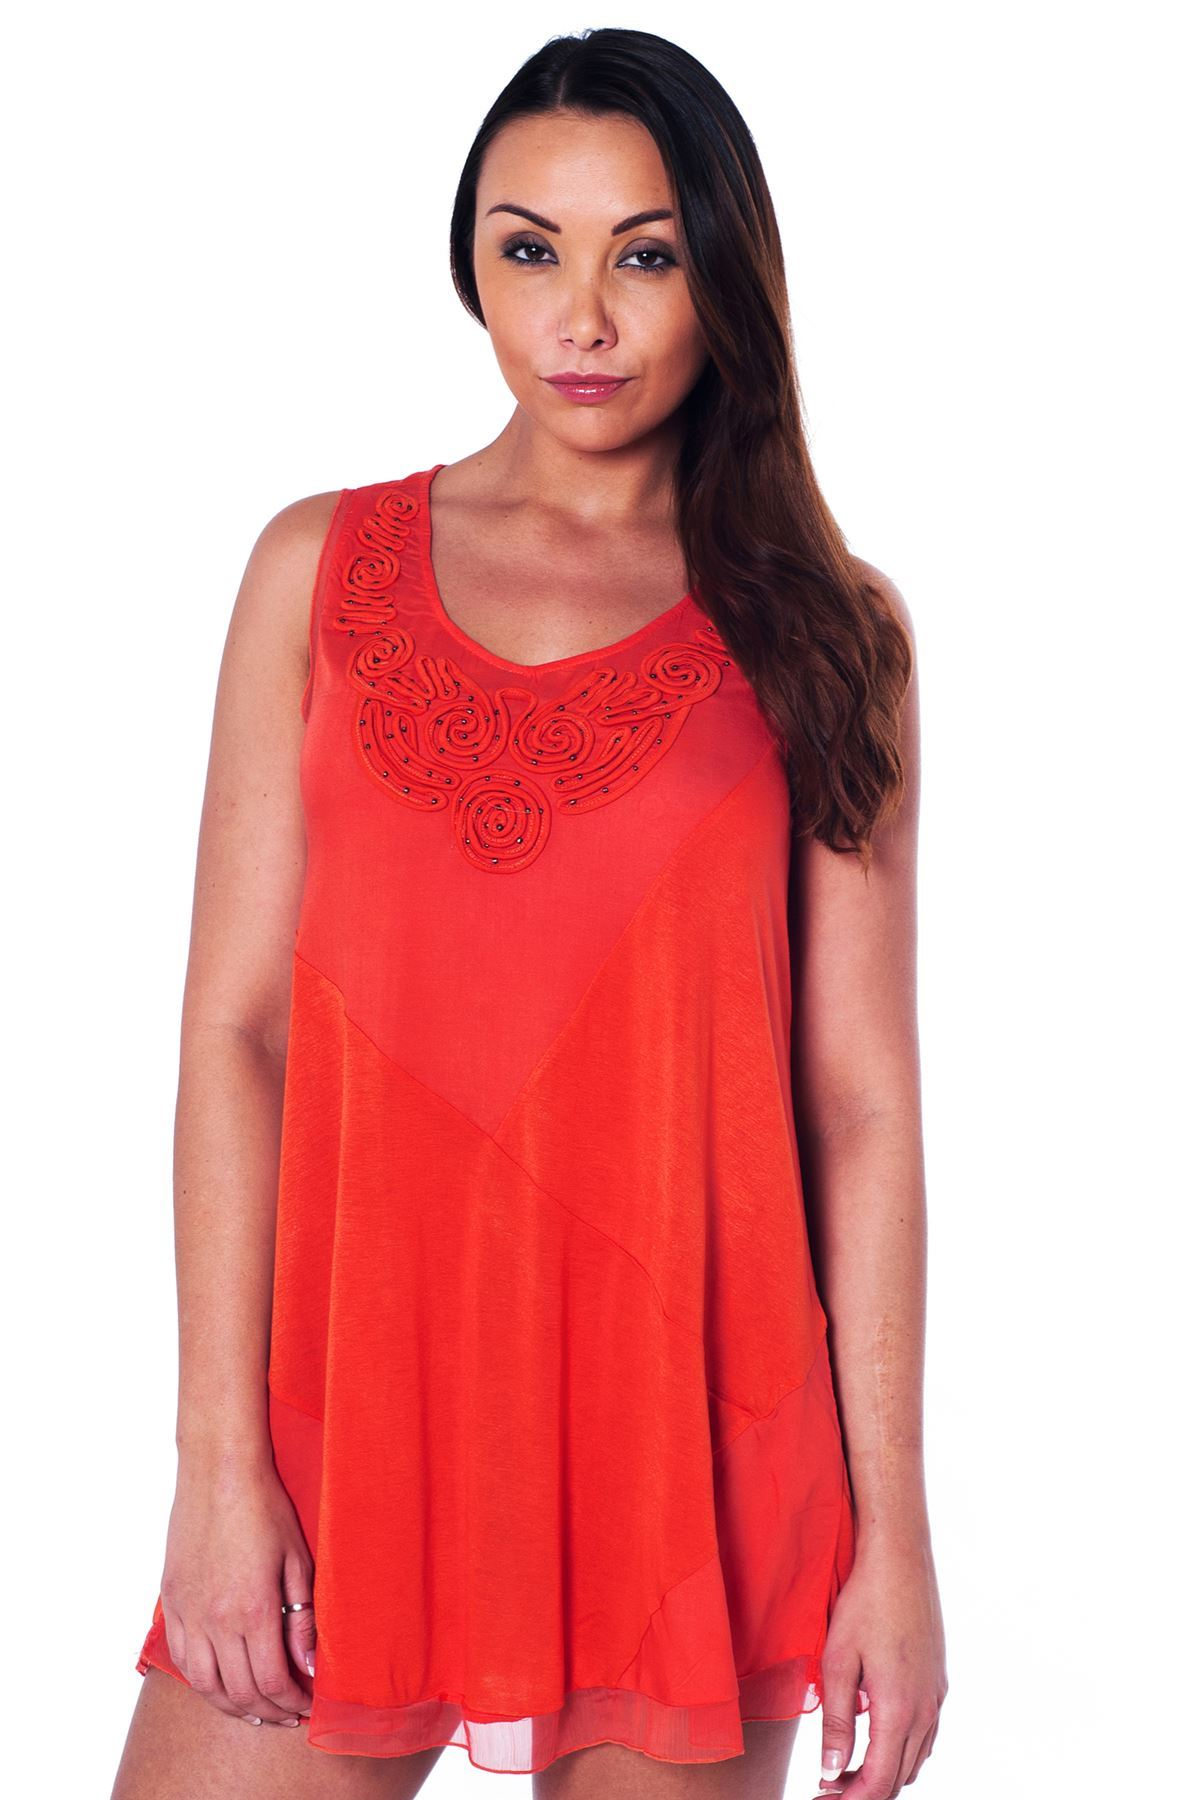 Per-Una-Orange-Summer-Top-Lightweight-Chiffon-Trim-amp-Beads-All-Sizes-Holiday